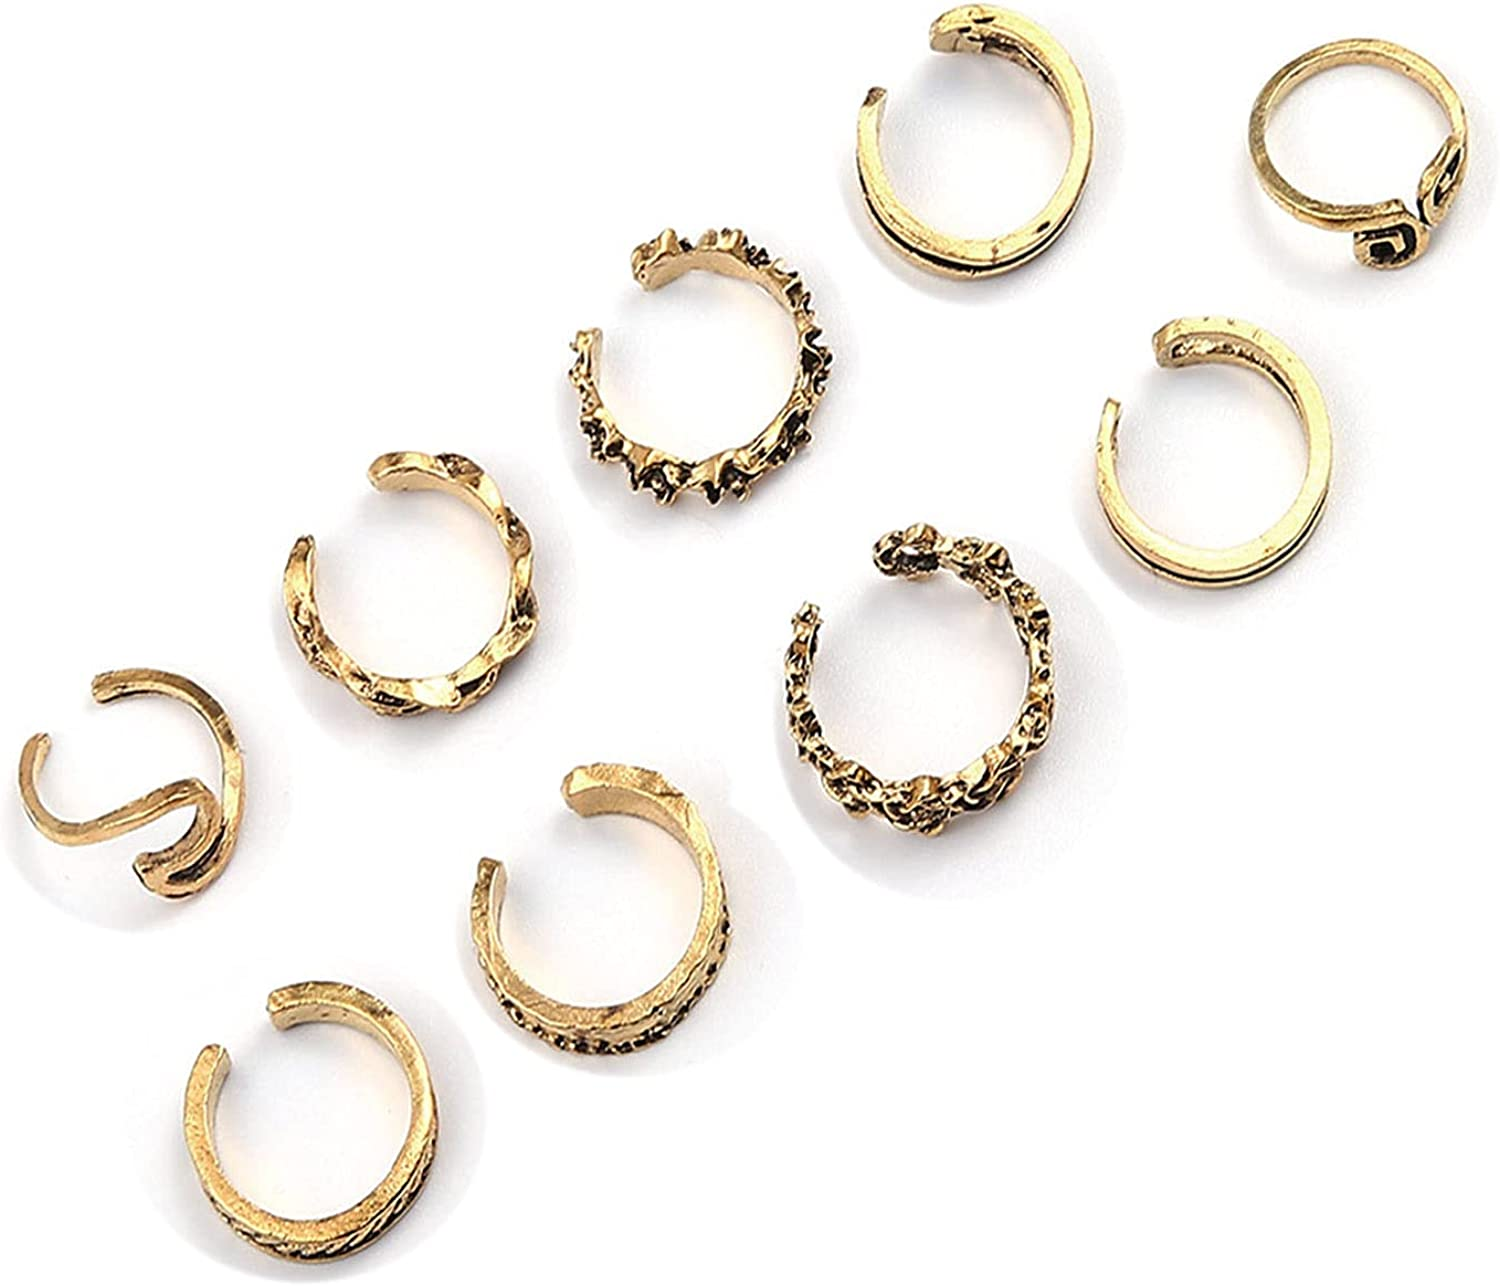 Sttiafay Max 46% Ranking TOP13 OFF Boho Stackable Knuckle Toe Set Knot Ring Rin Simple